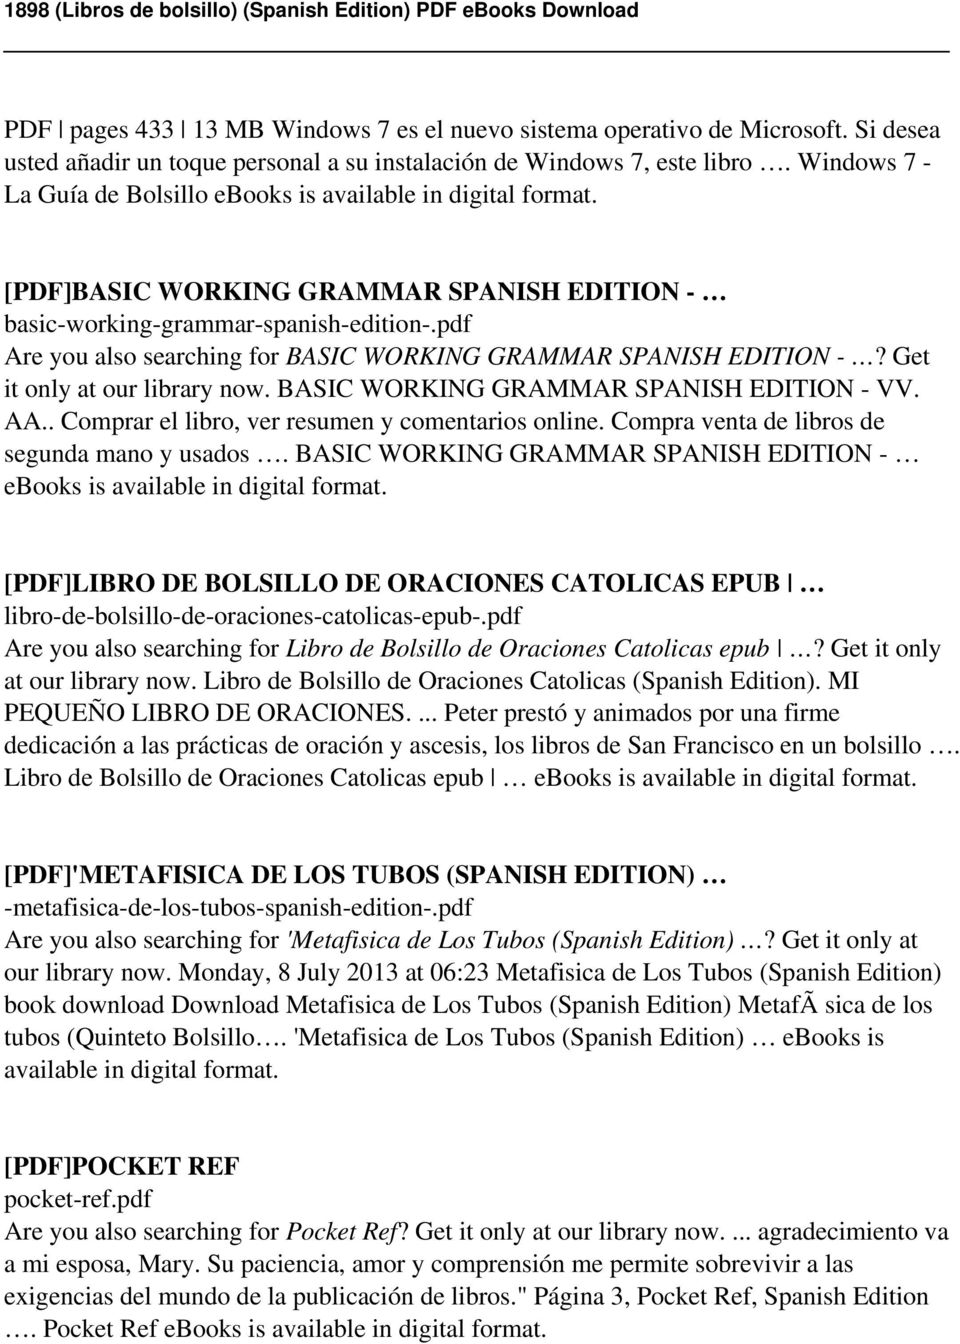 1898 libros de bolsillo spanish edition pdf pdf are you also searching for basic working grammar spanish edition get it only fandeluxe Image collections